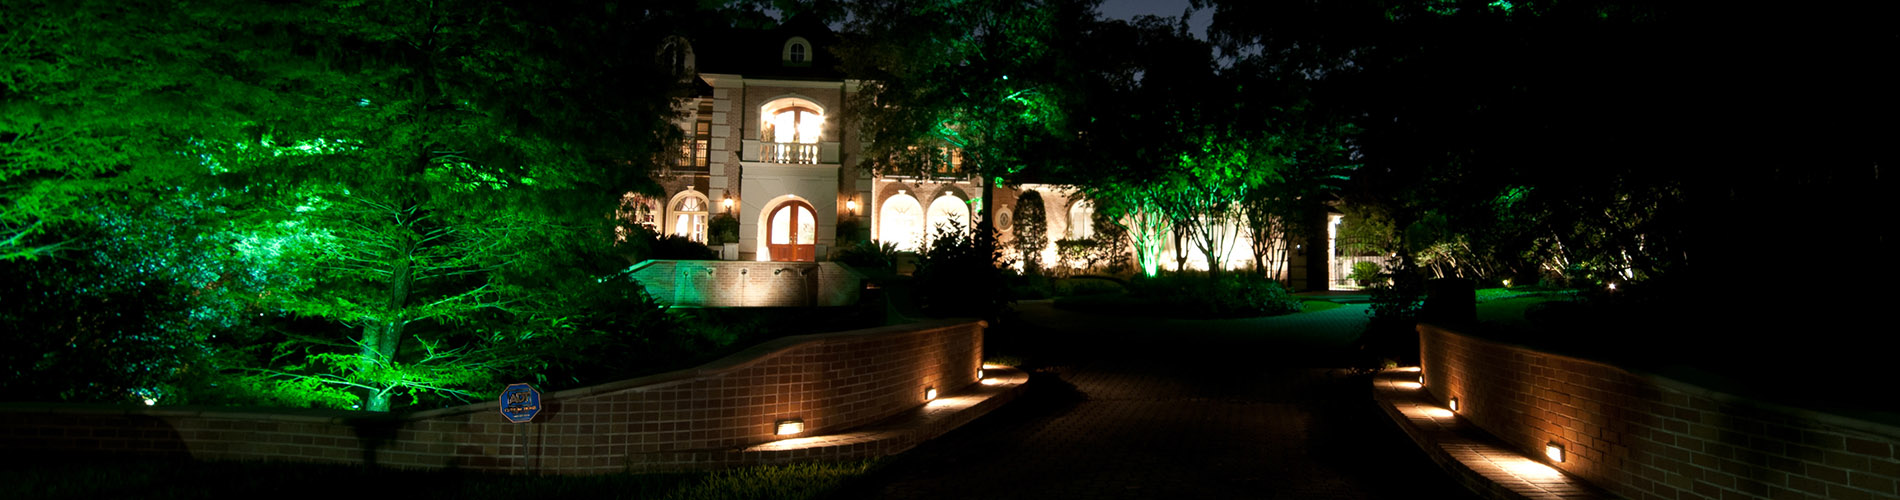 Houston's Finest Landscape Lighting Installer